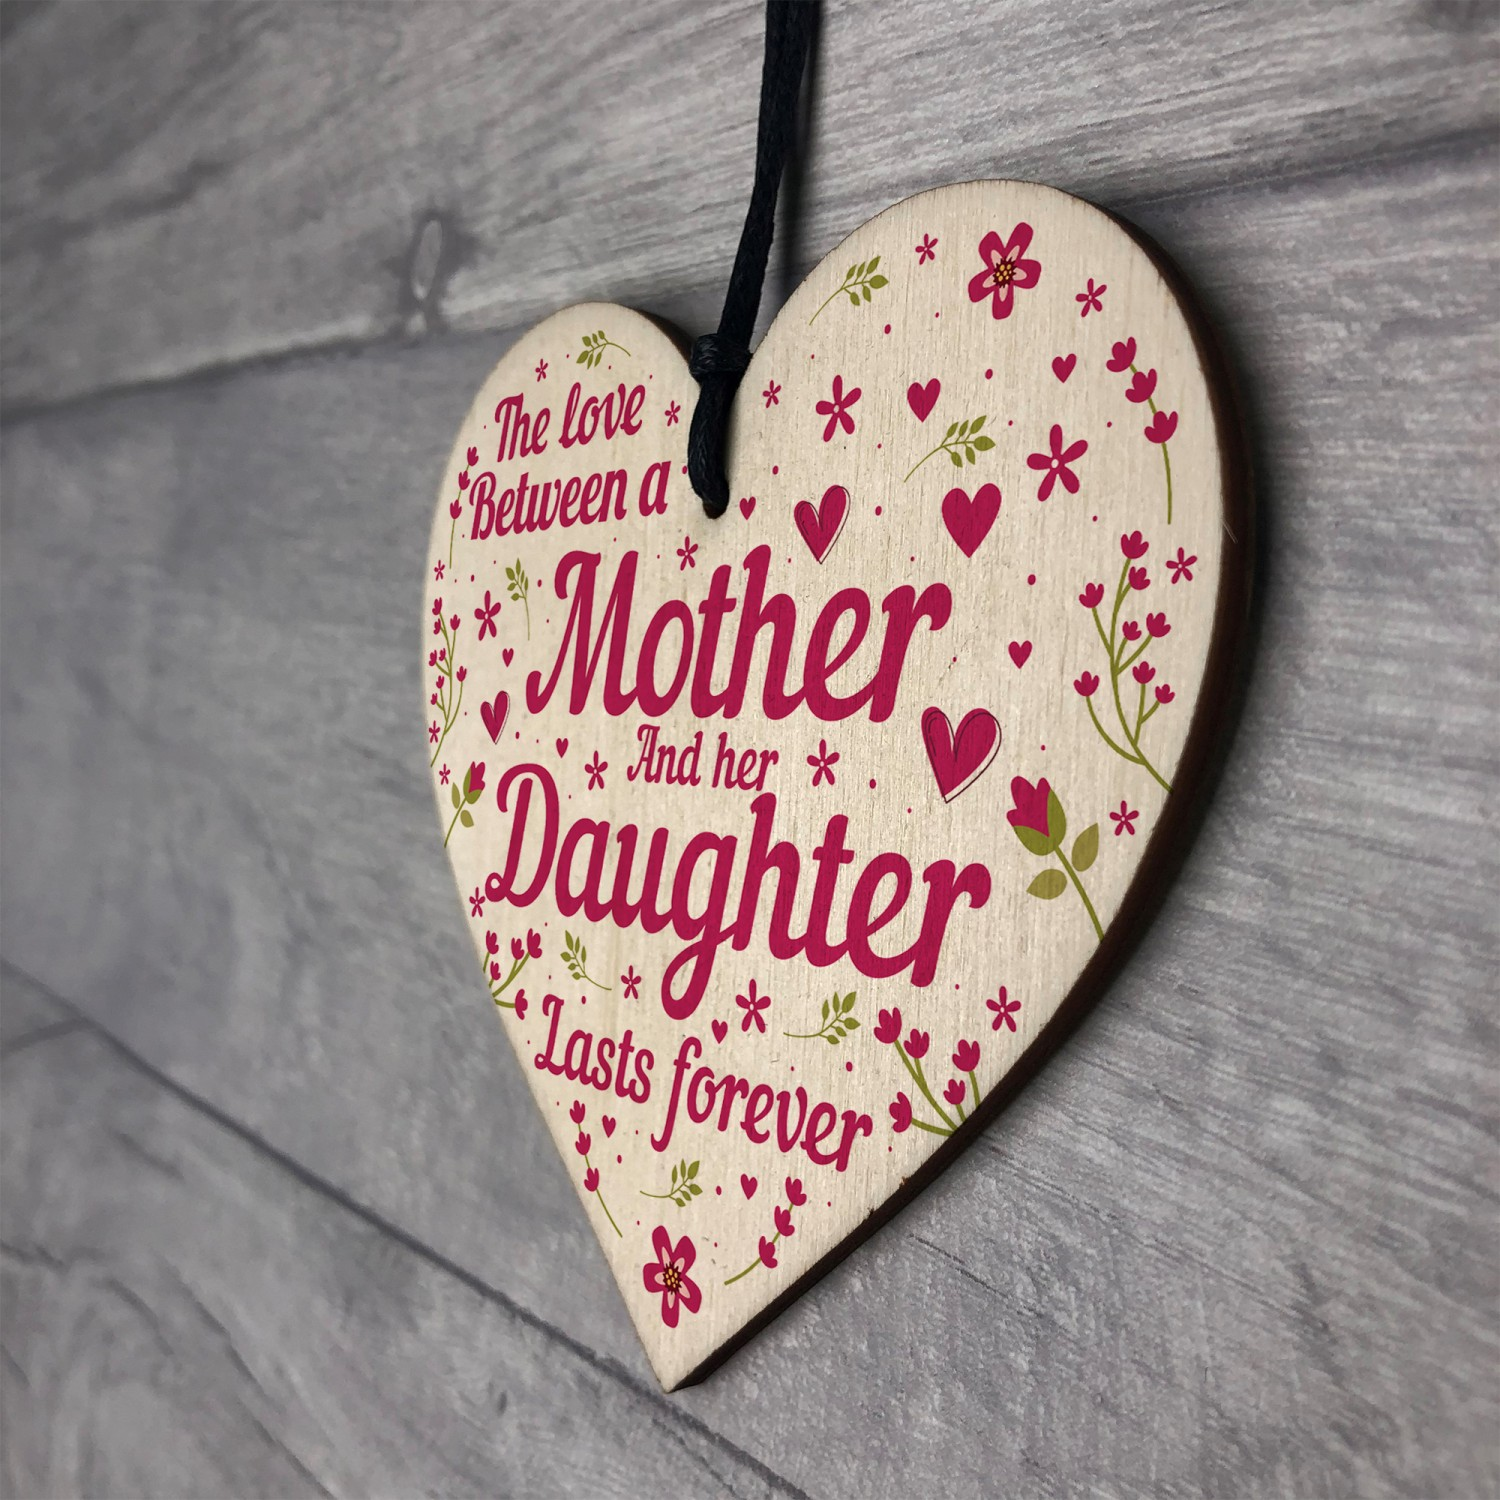 Mum Gifts Mothers Day Birthday From Daughter Wood Heart